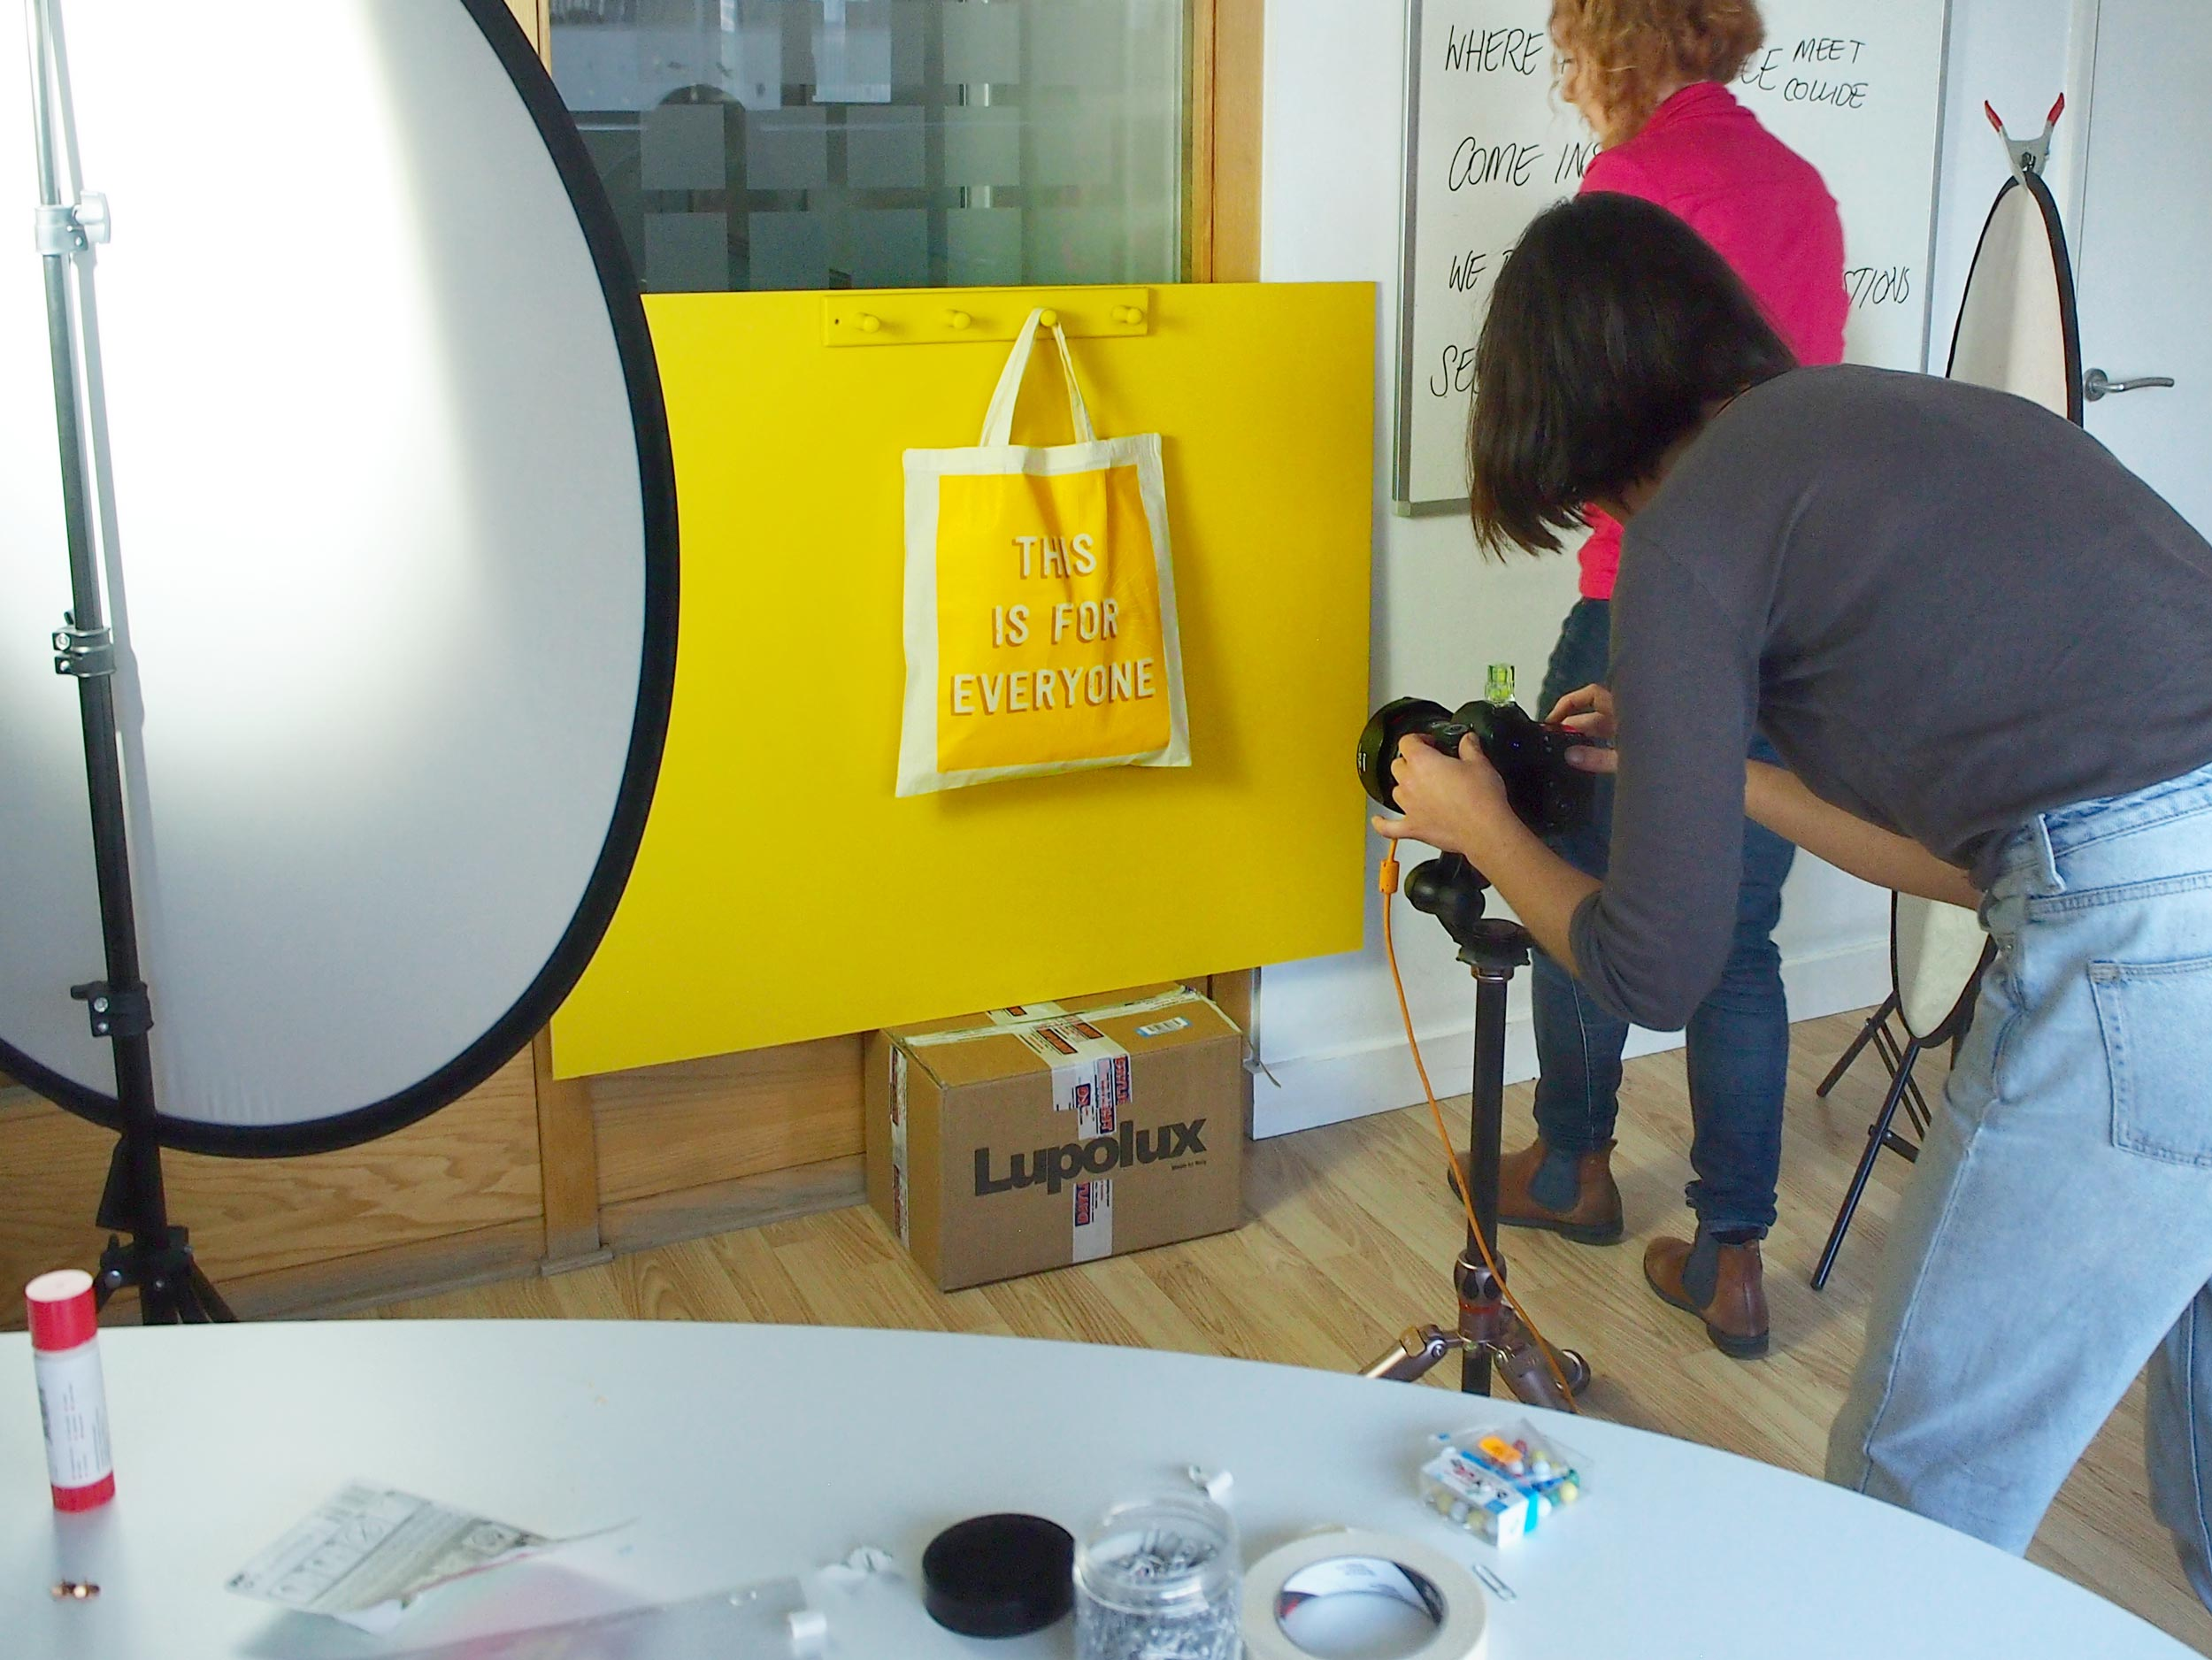 A studio set up with a photographer, shooting an image of a yellow bag on a yellow backing board